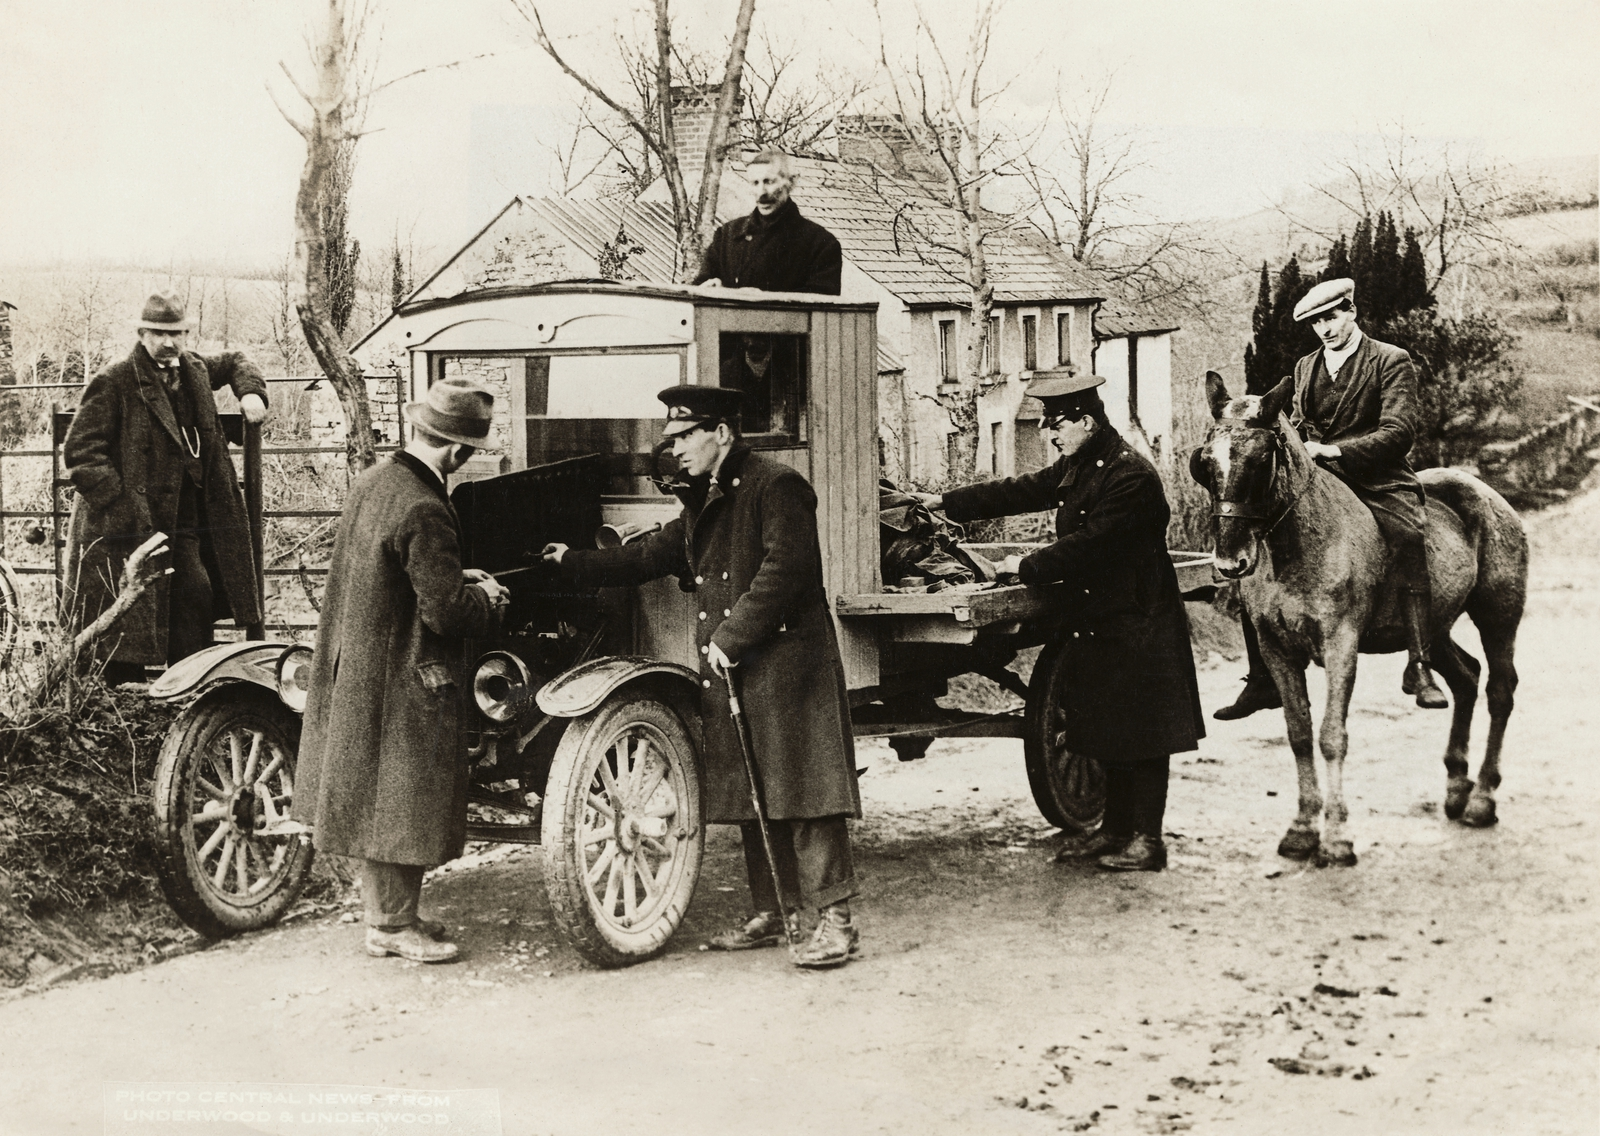 Image - A check on the border in the 1920s. Photo: George Rinhart/Corbis via Getty Images